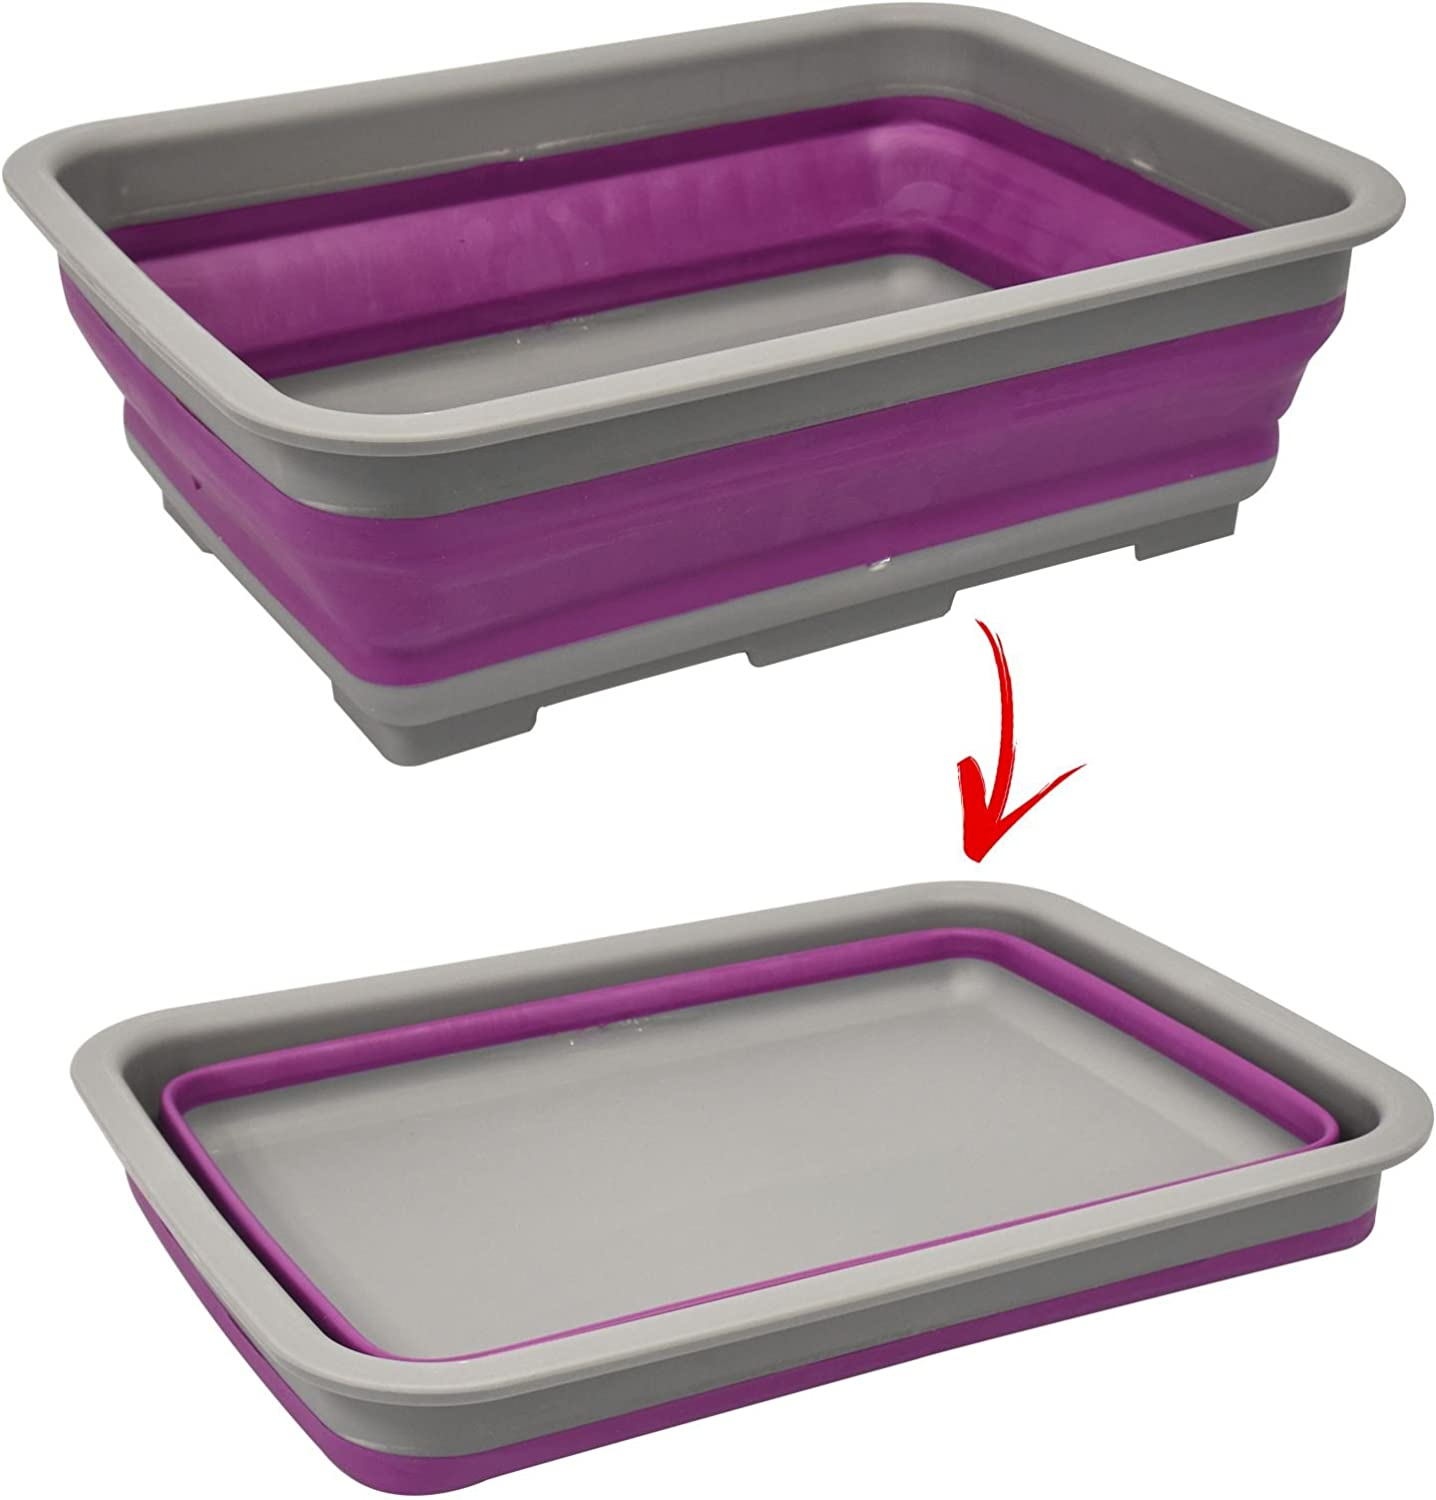 PURPLE 10 Litre Collapsible Wash Up Bowl Kitchen Supplies Camping Outdoor Picnic